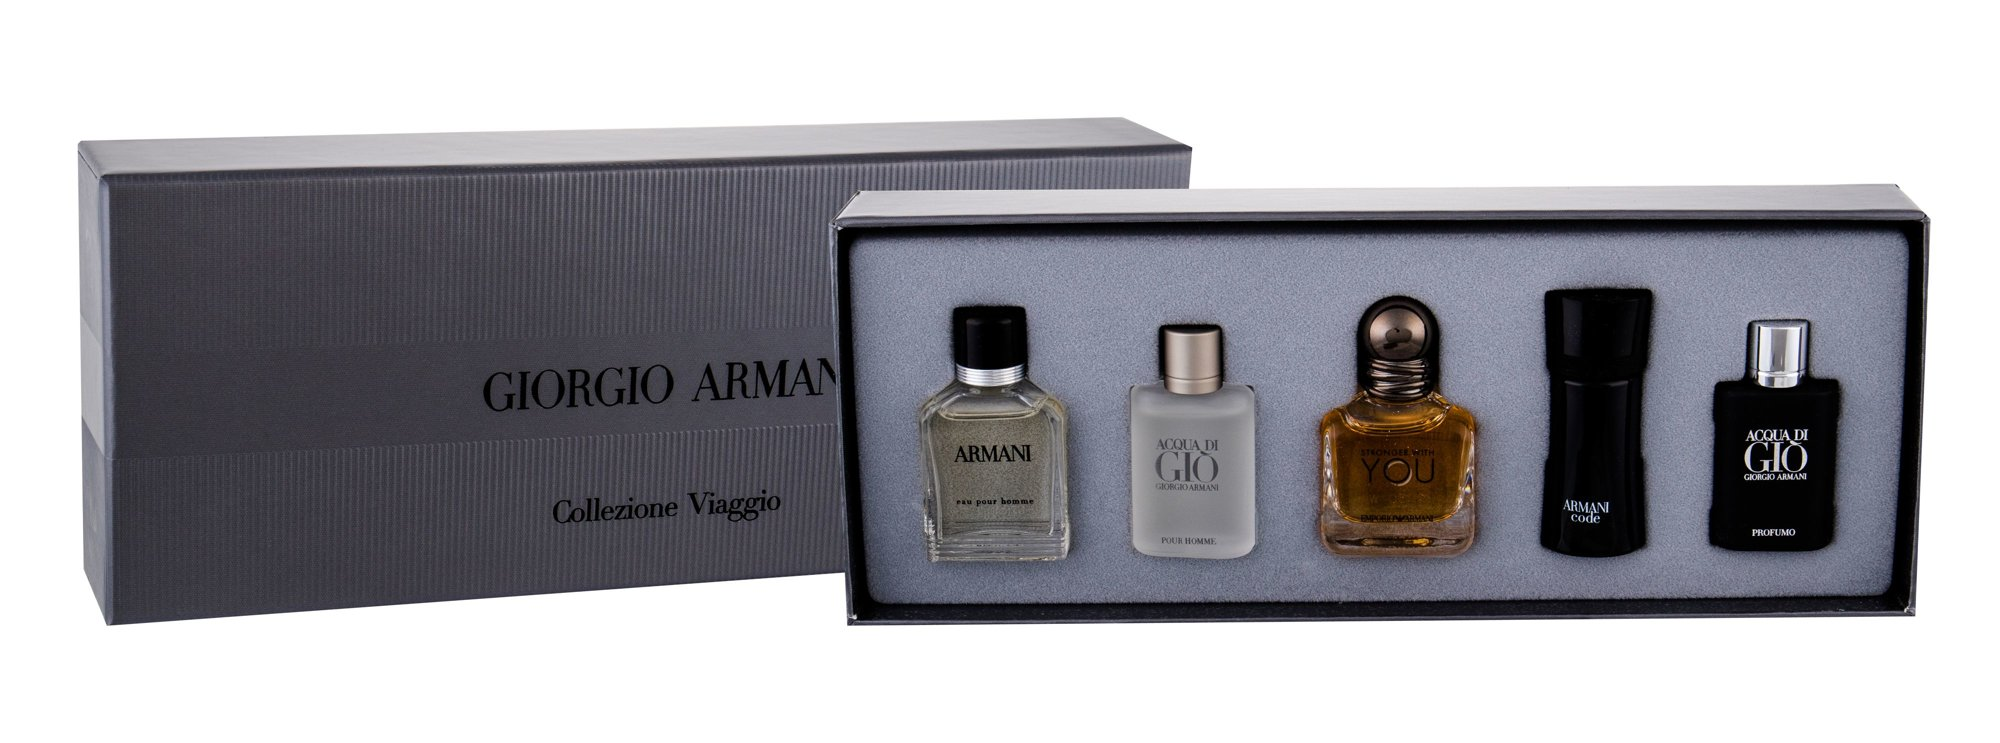 Giorgio Armani Mini Set Eau de Toilette 28ml